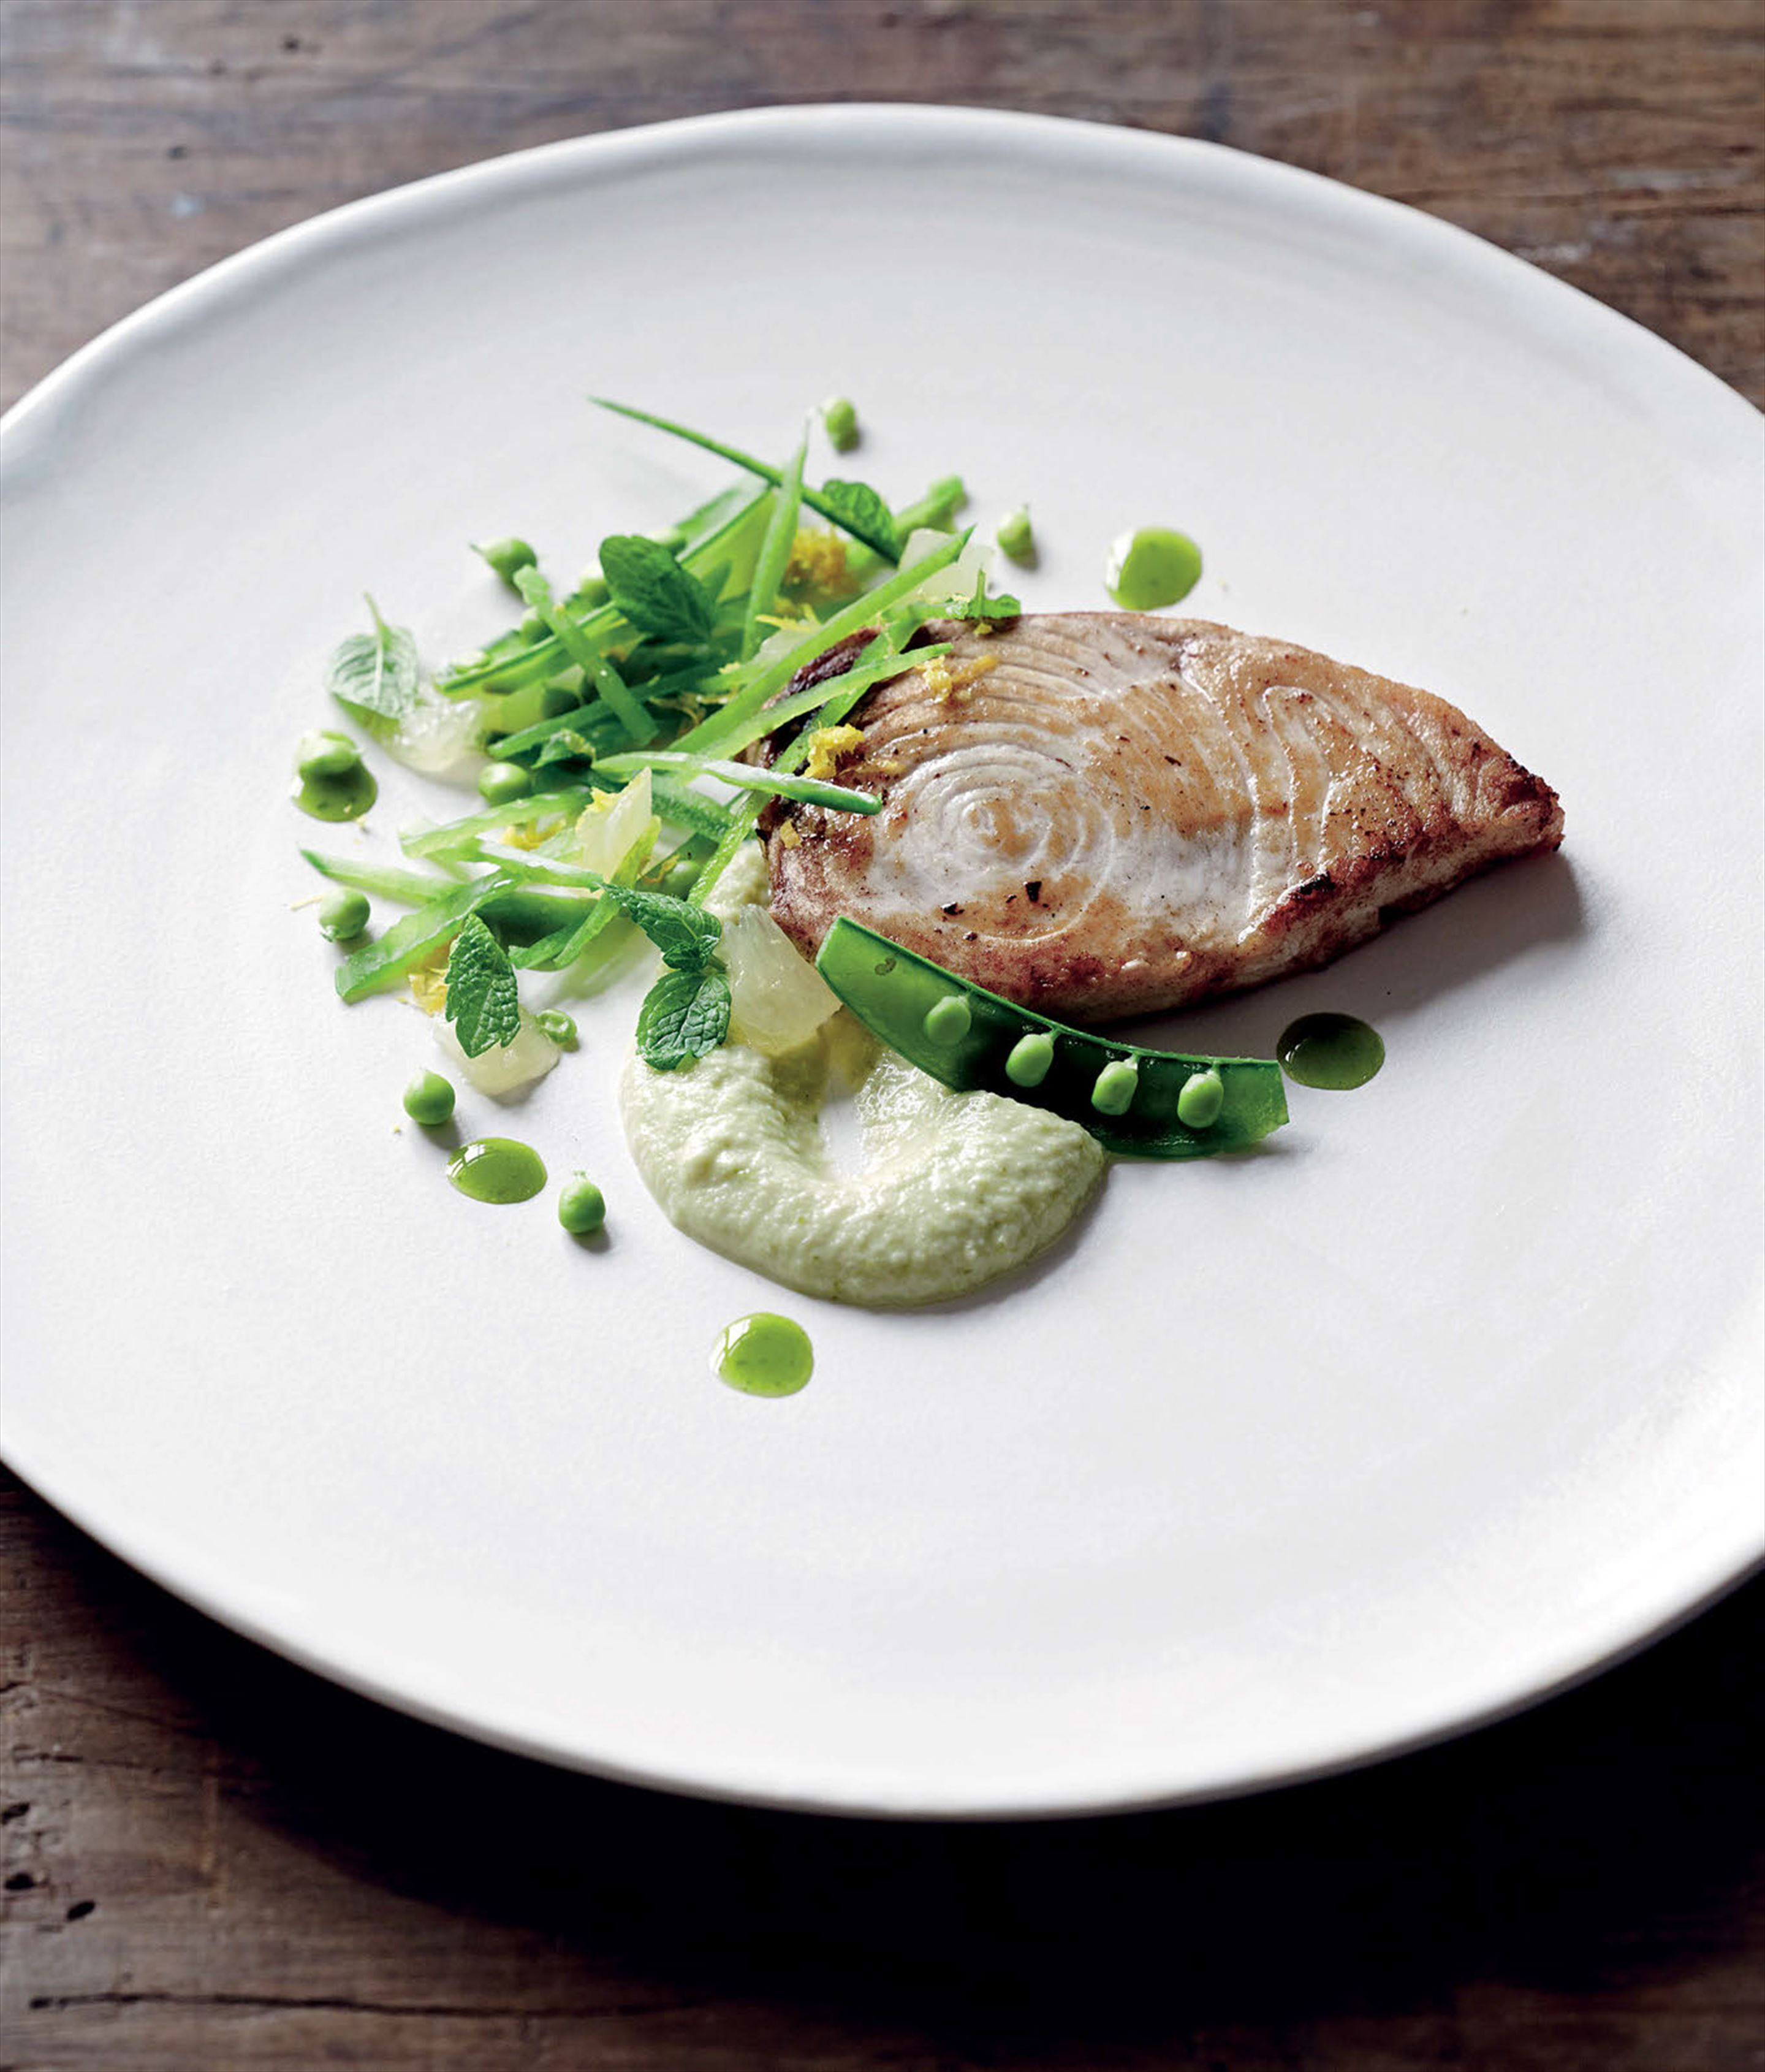 Pan-fried swordfish with minted pea and lemon salad